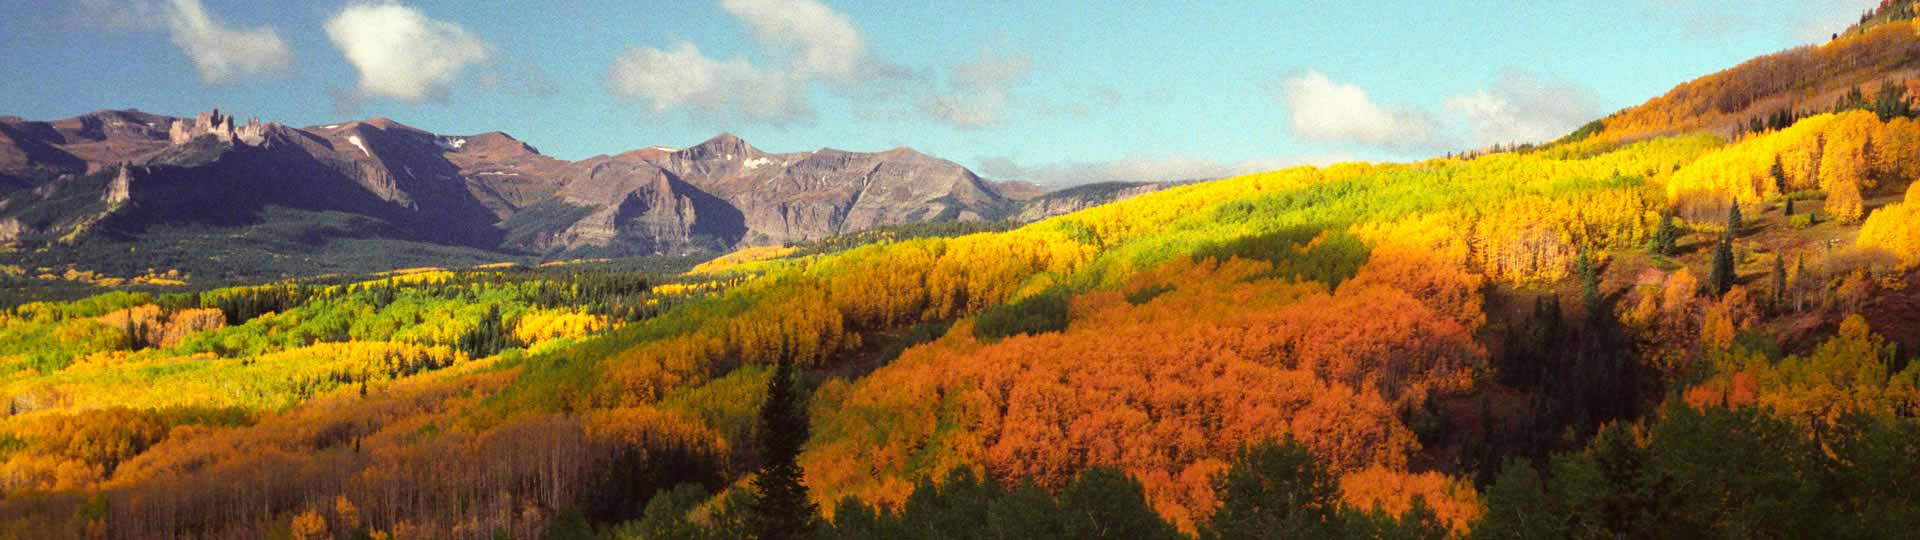 Crested Butte Region